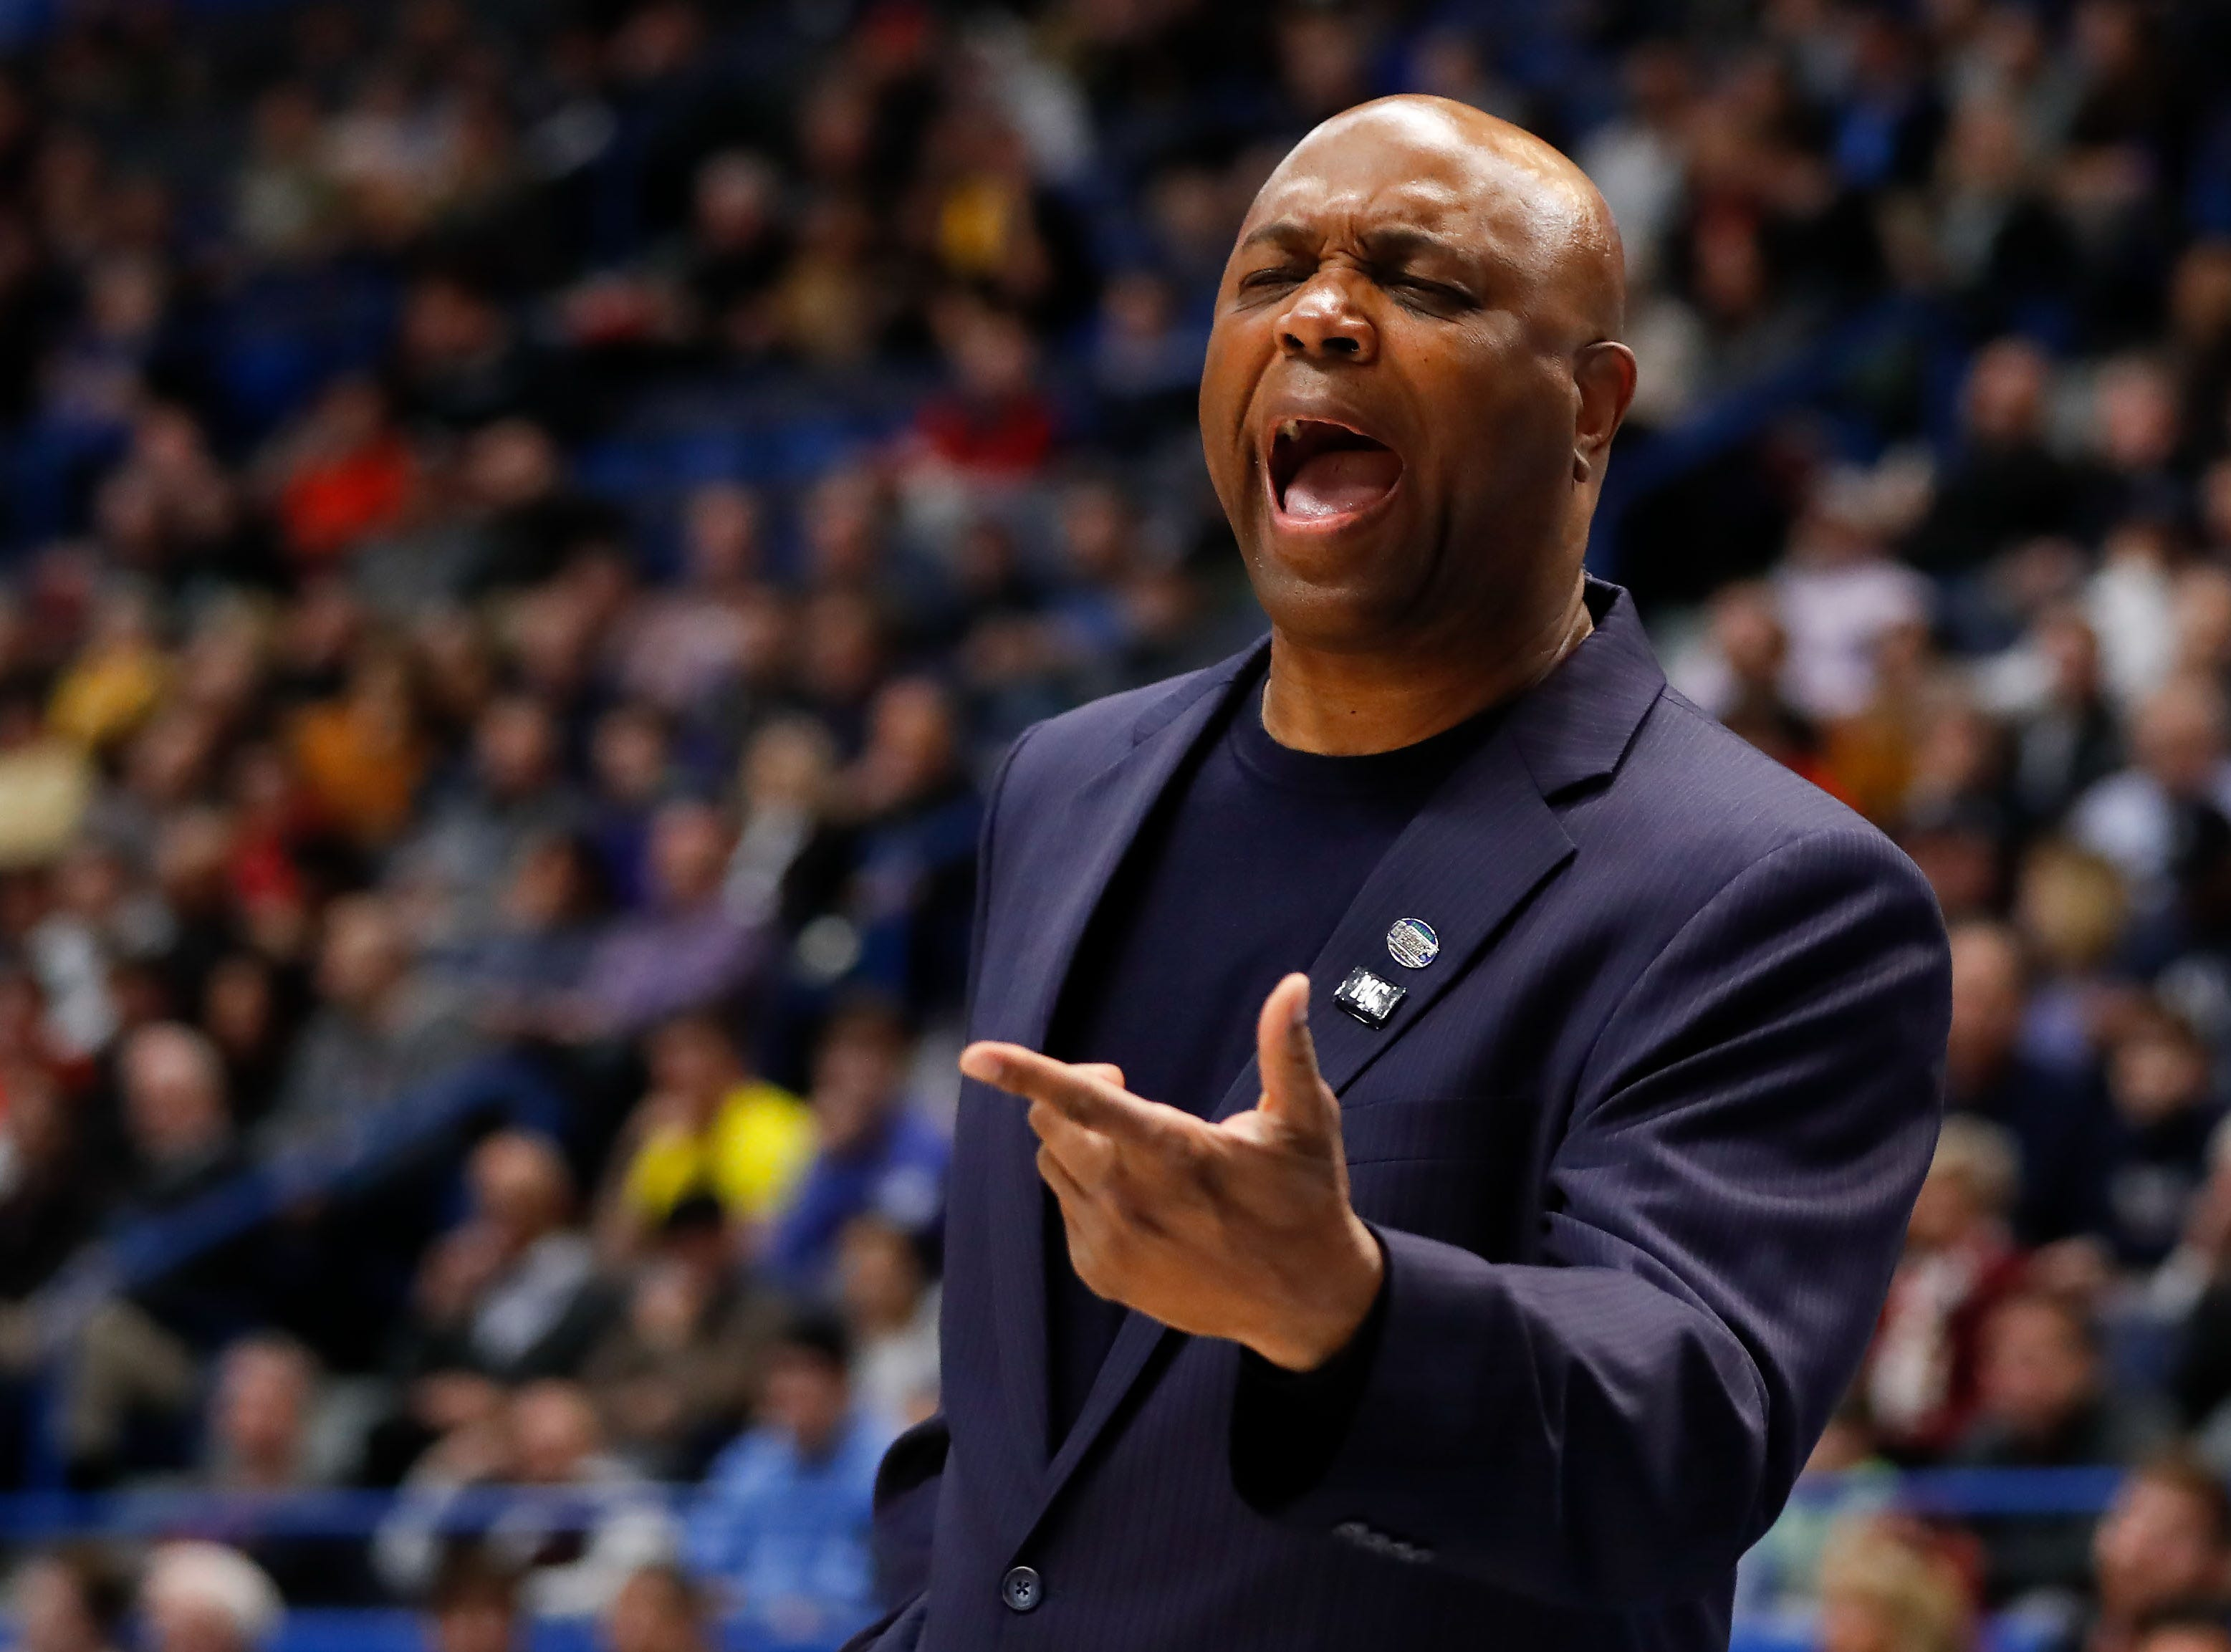 Mar 23, 2019; Hartford, CT, USA; Florida State Seminoles head coach Leonard Hamilton reacts to a play against the Murray State Racers during the first half of a game in the second round of the 2019 NCAA Tournament at XL Center. Mandatory Credit: David Butler II-USA TODAY Sports